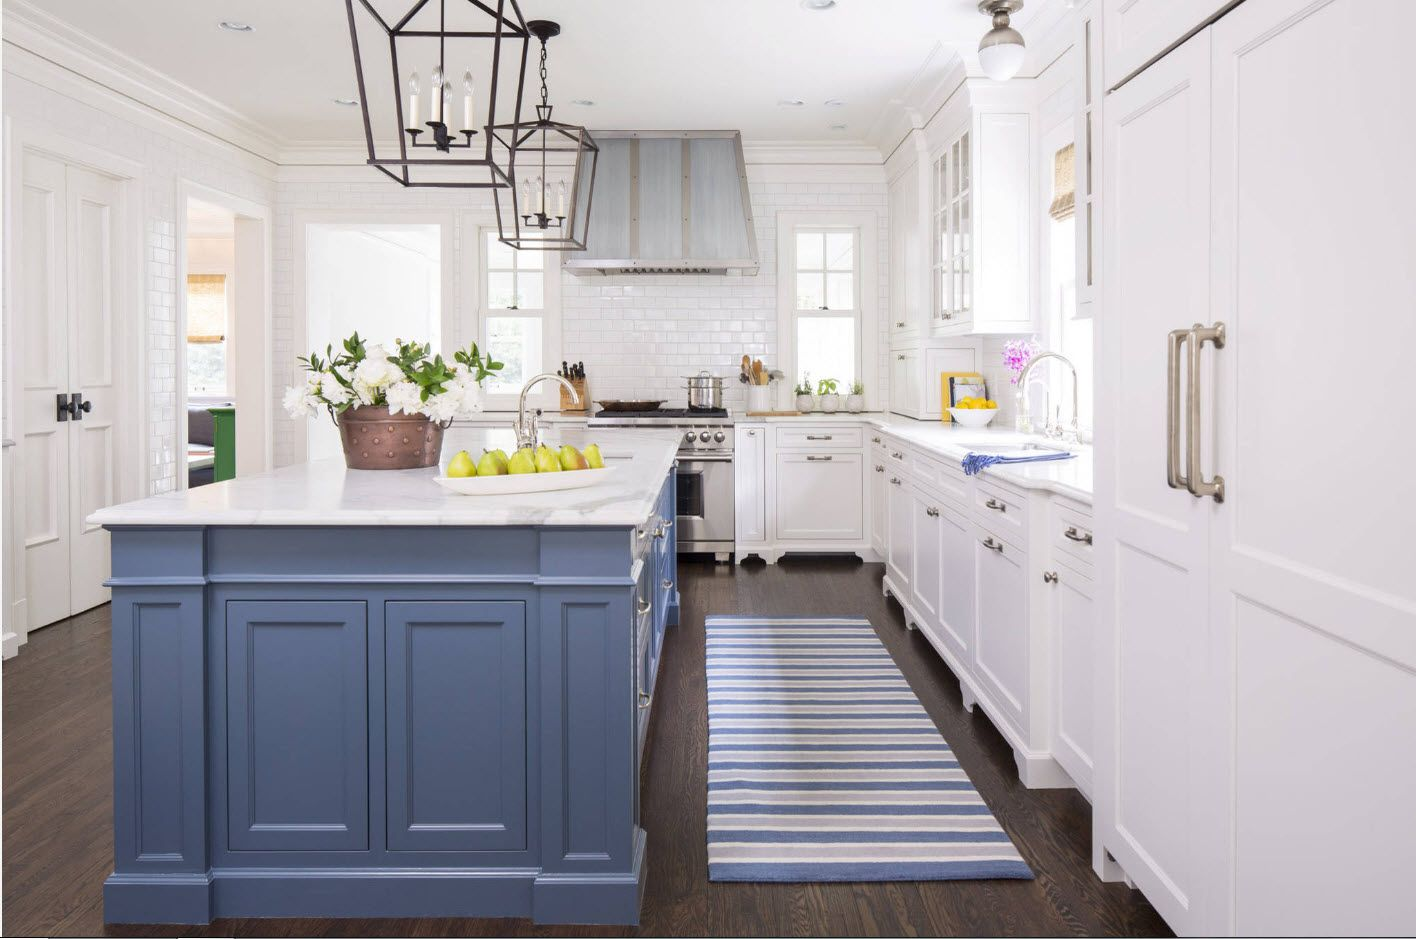 square of the kitchen island and caged lampshades